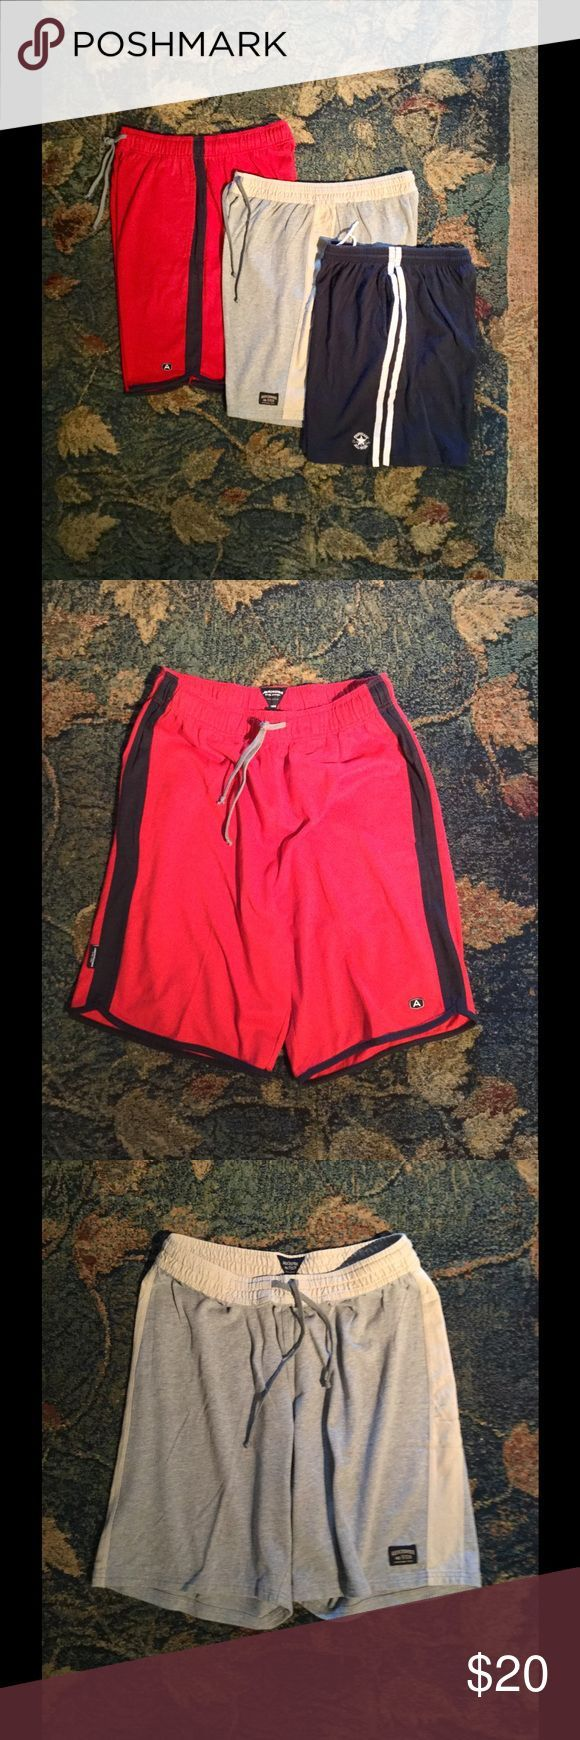 "❗Price Drop❗Bundled Men's Gym Shorts 2 Abercrombie Red and Beige and 1 Converse Navy - 7"" to 10"" inseams Abercrombie & Fitch Shorts Athletic"